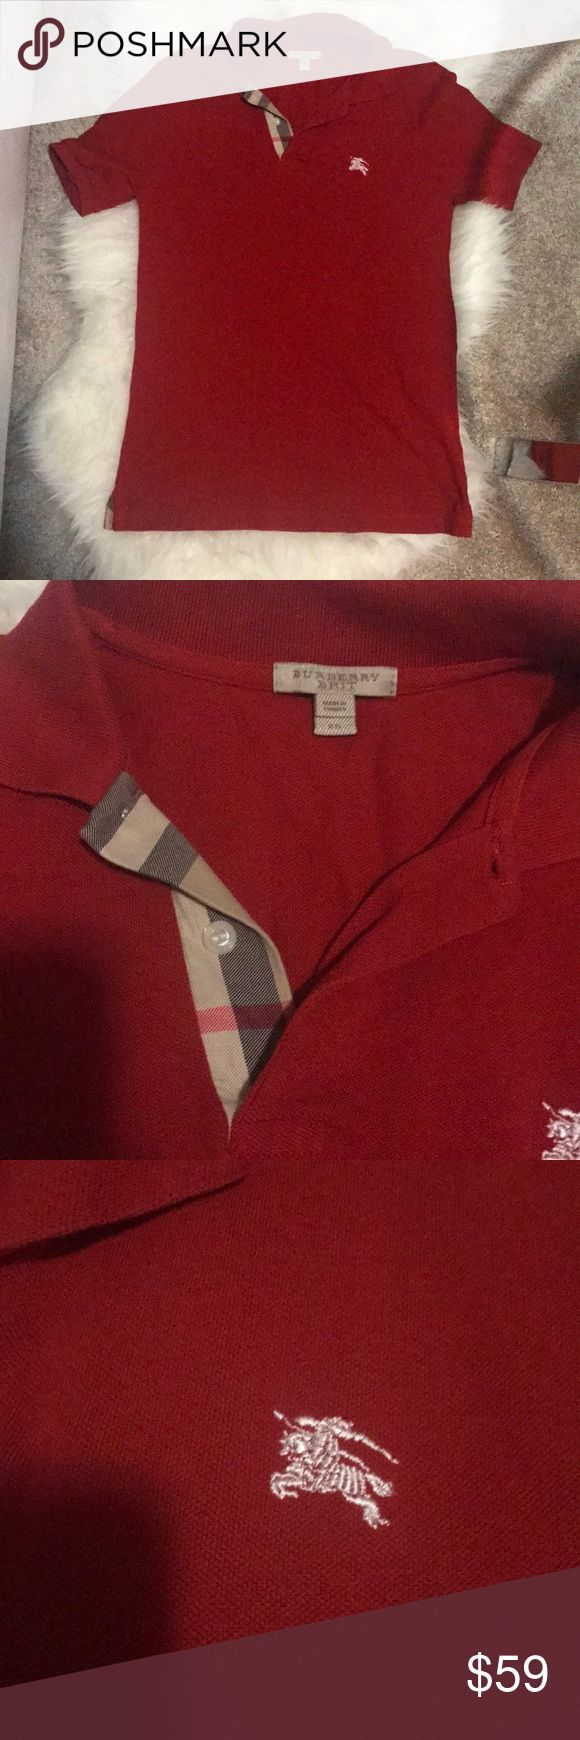 Red BURBERRY for MEN size XS Very good condition . No stain or holes Burberry Shirts Polos